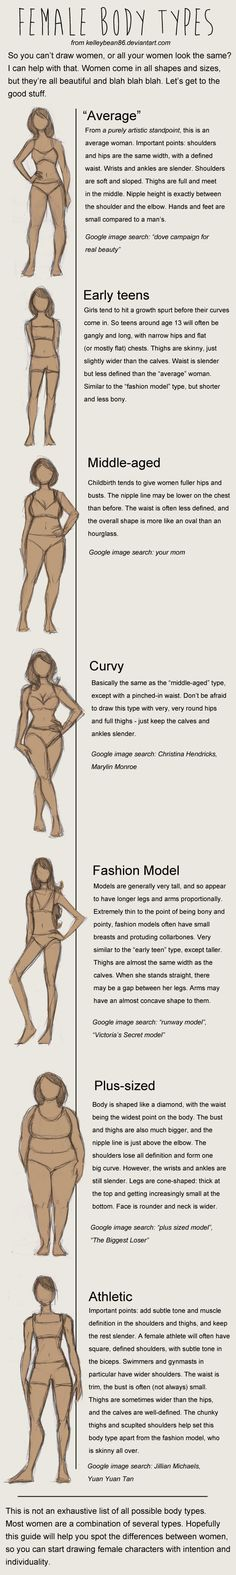 Draw Female Body Types by ~kelleybean86 on deviantART, you wouldn't believe how helpful this chart actually can be. :)